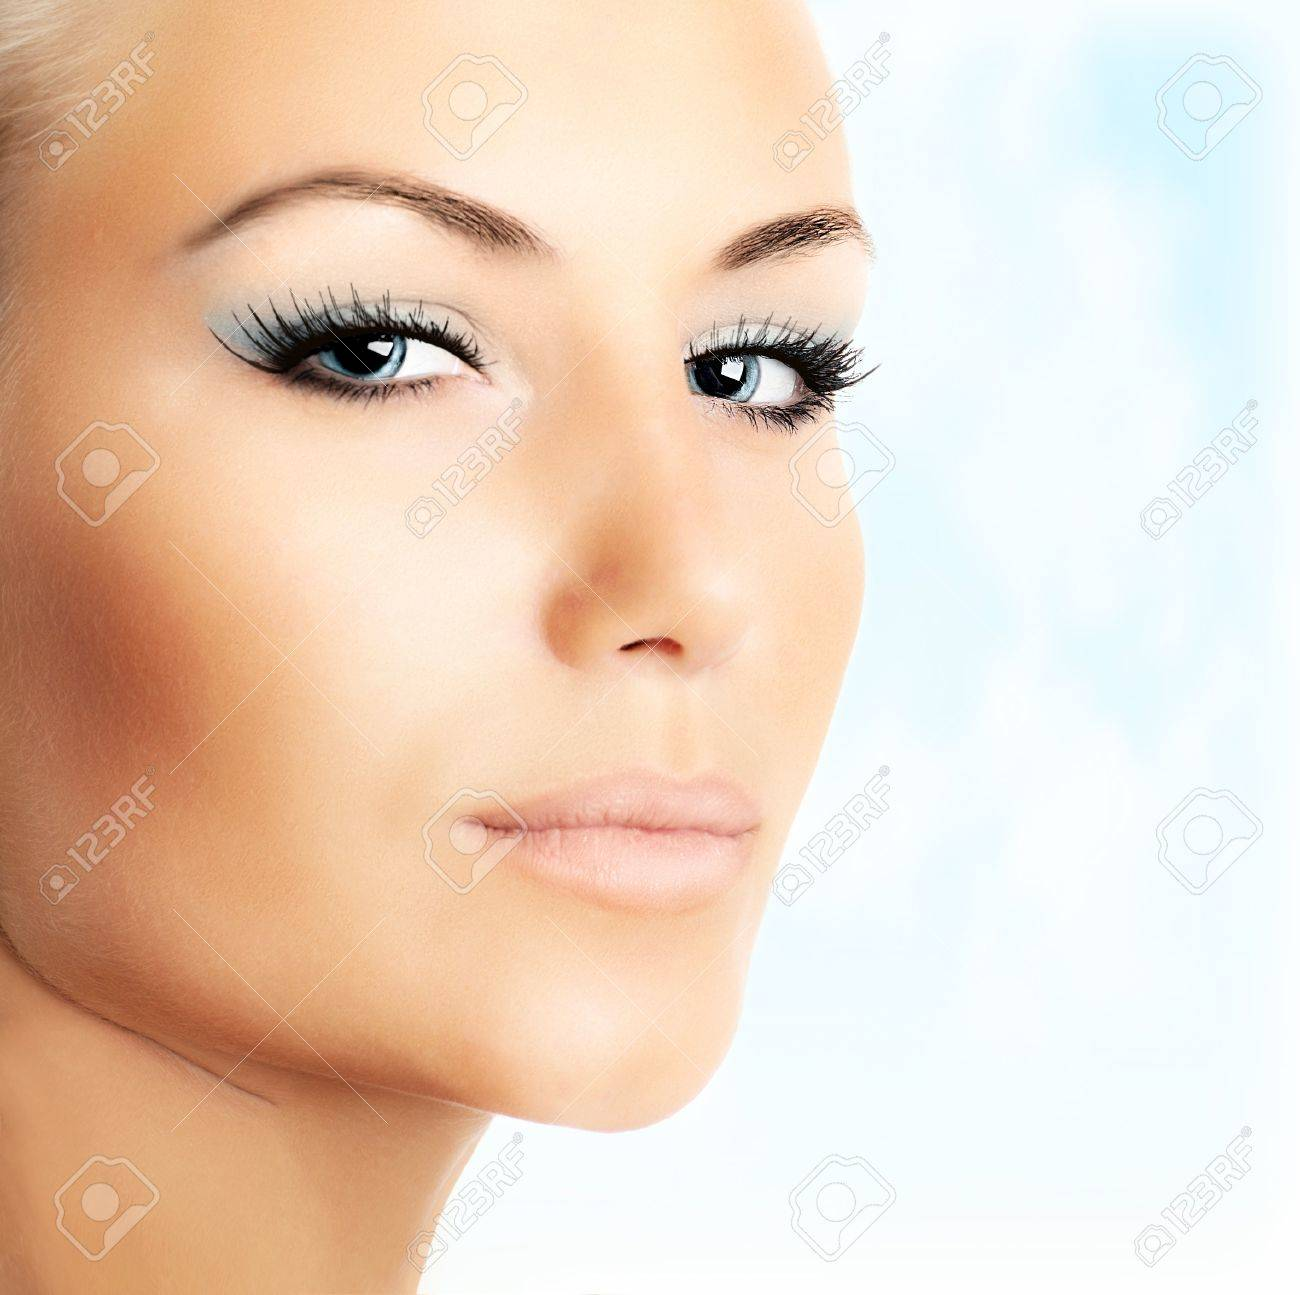 Closeup of beautiful female face over abstract blue sky background Stock Photo - 12879447